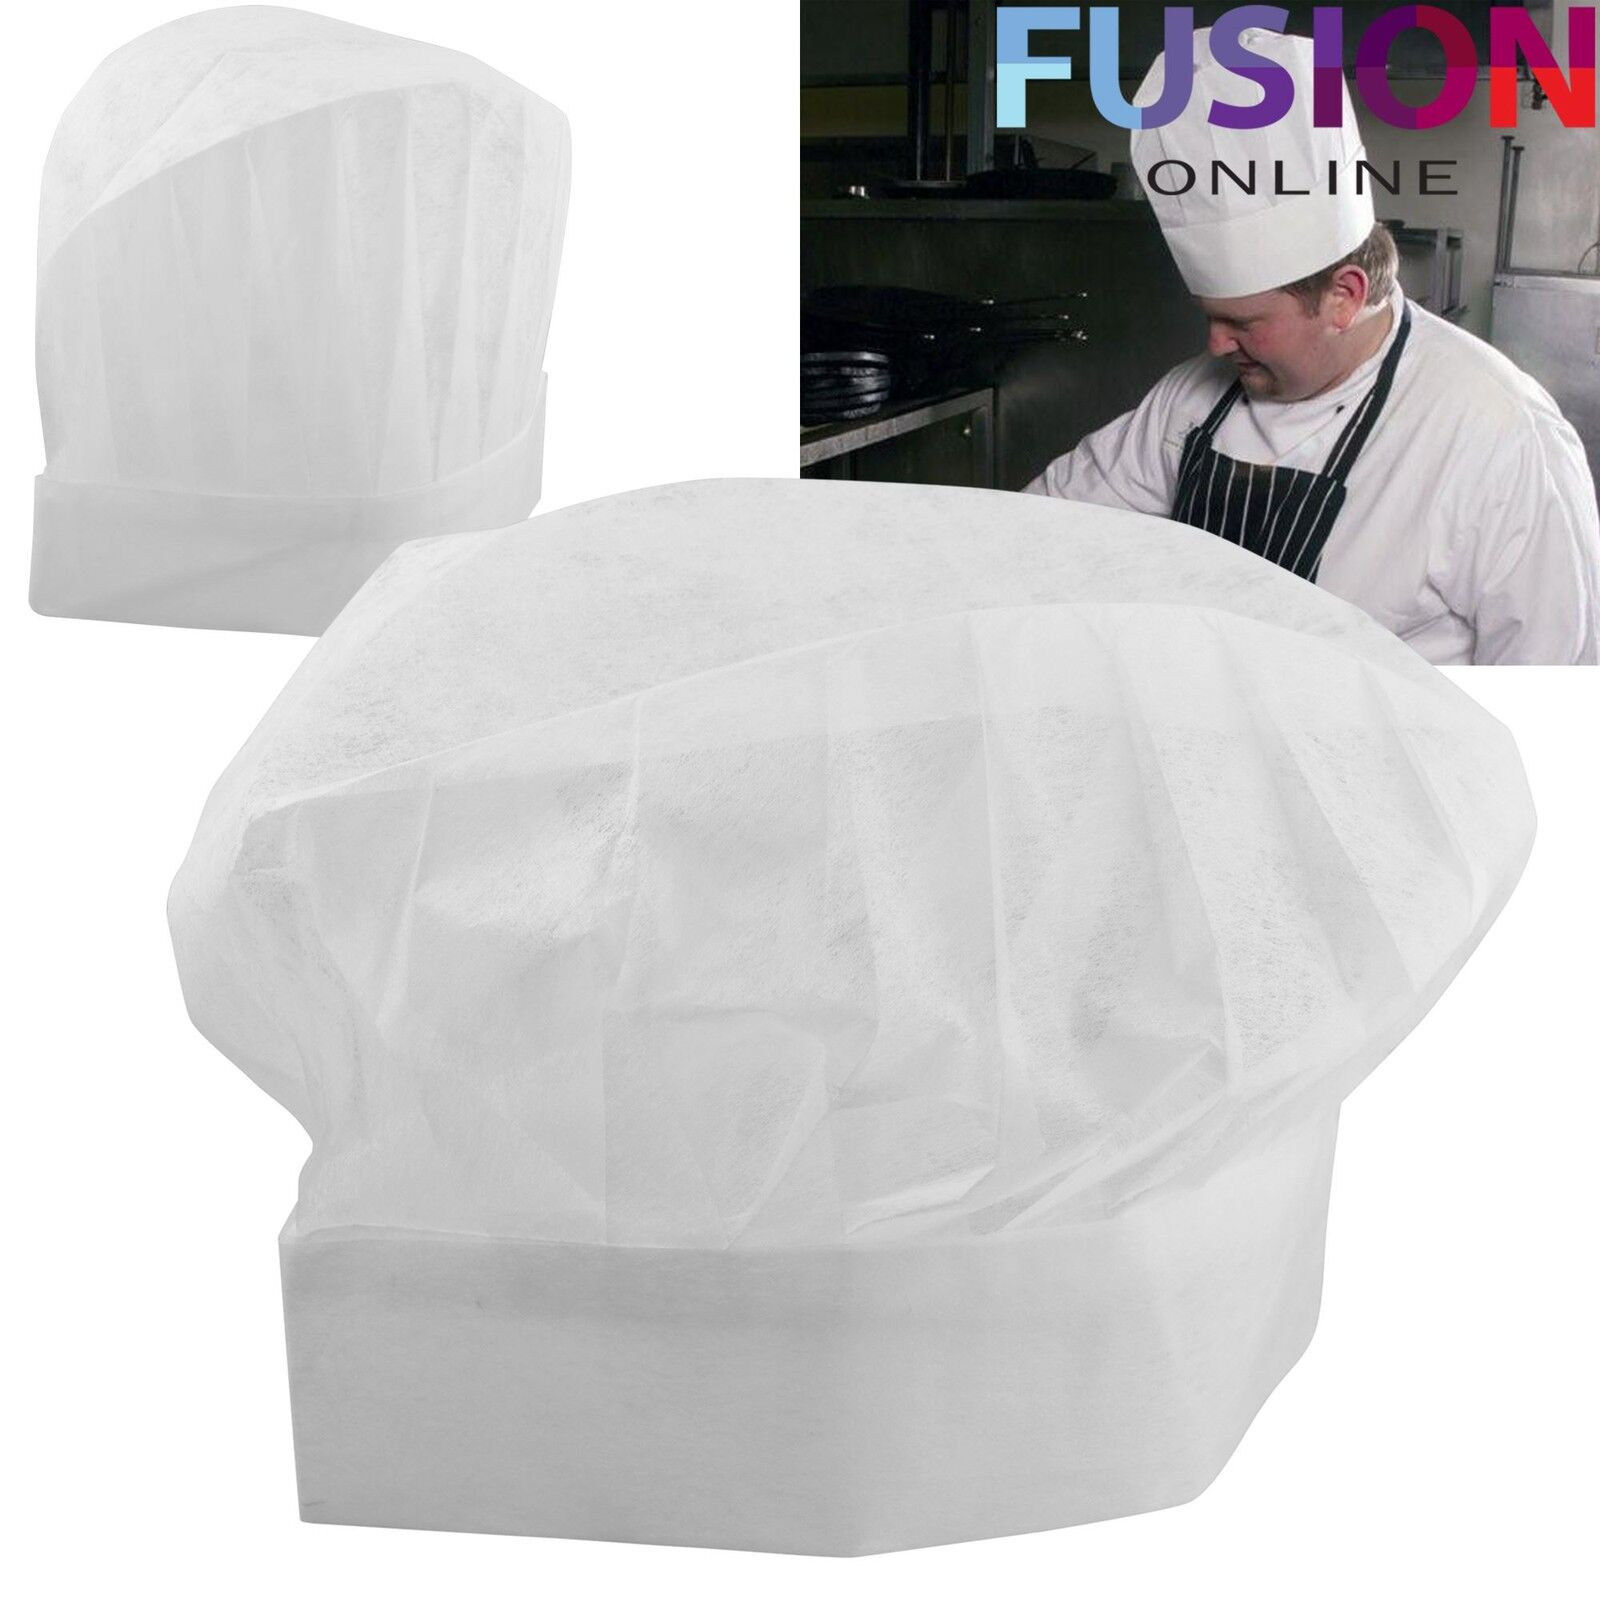 Chefs White Paper Hats Disposable Professional Restaurant Hotel Chef Catering